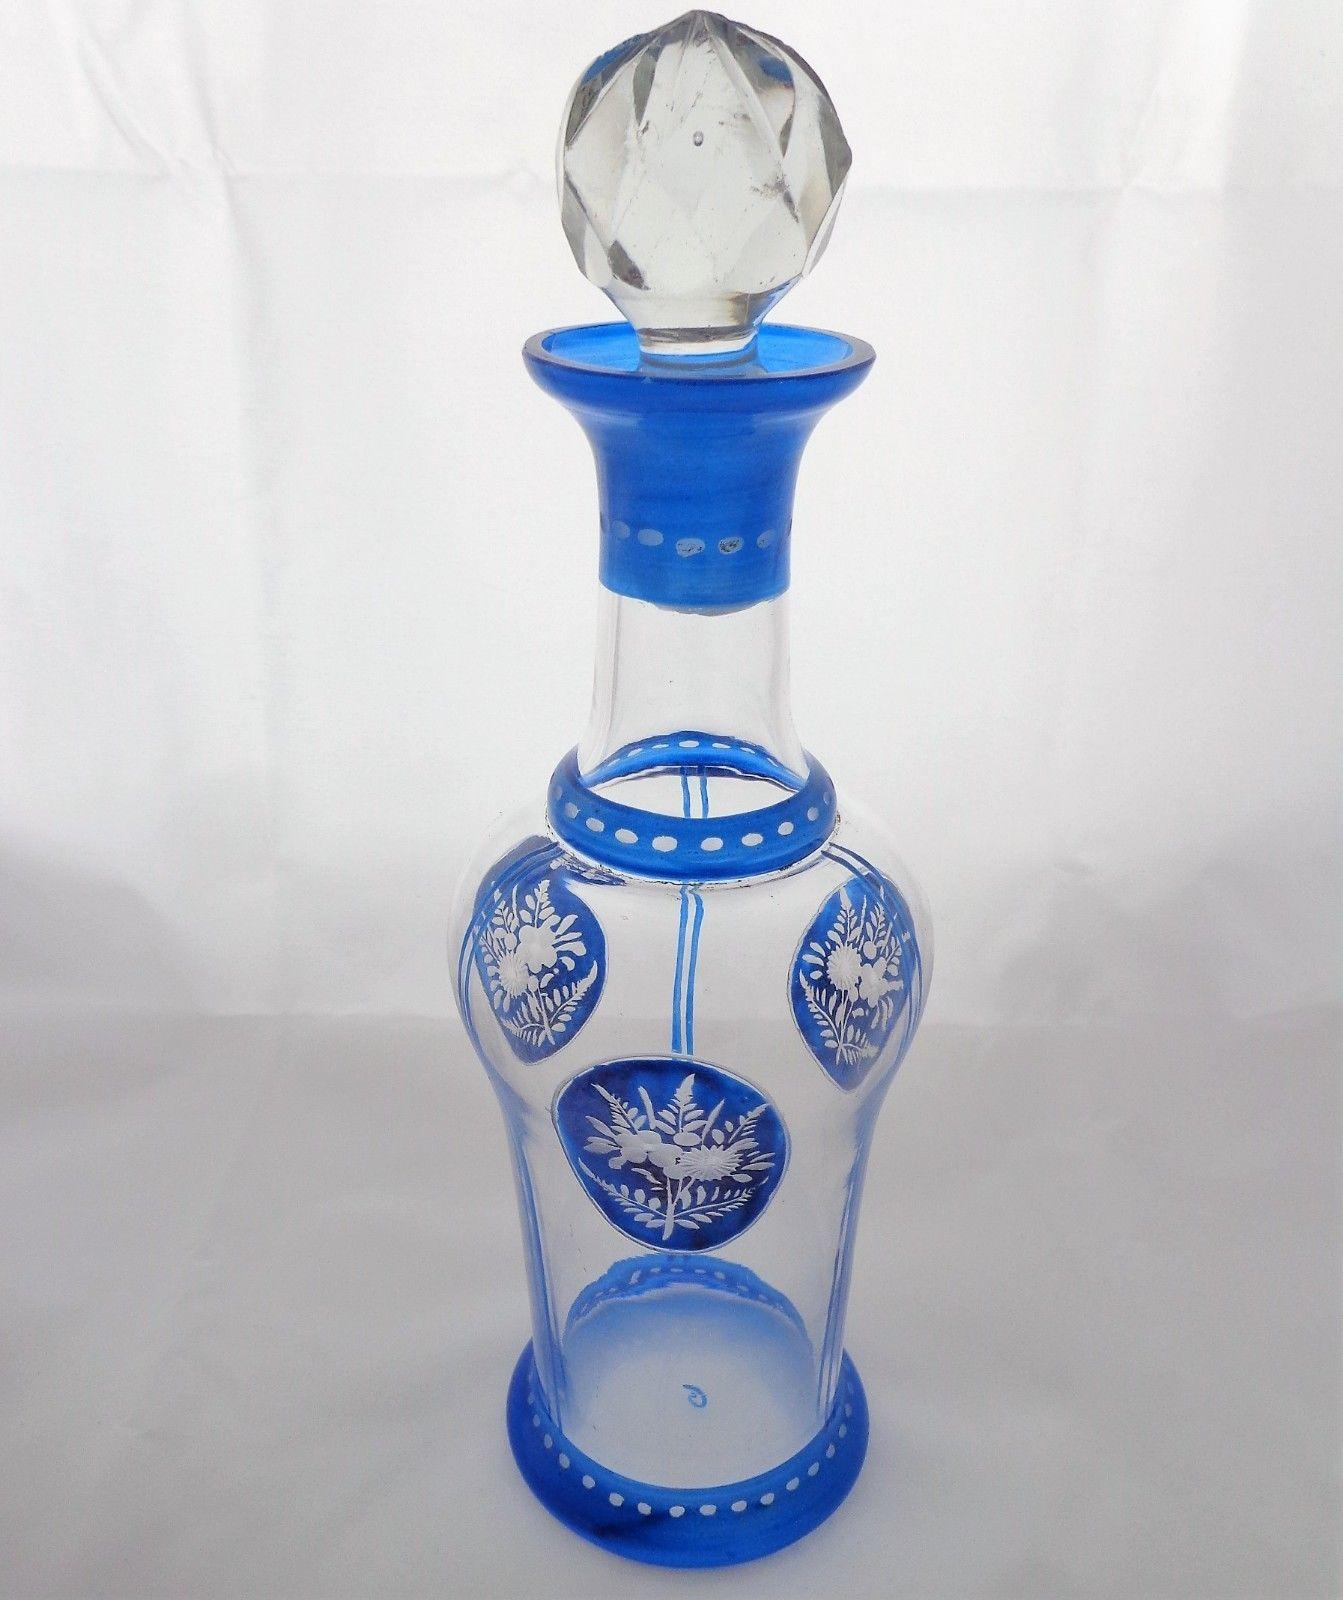 Art Deco French Glass Liqueur Decanter or Scent Bottle Blue Painted and Engraved